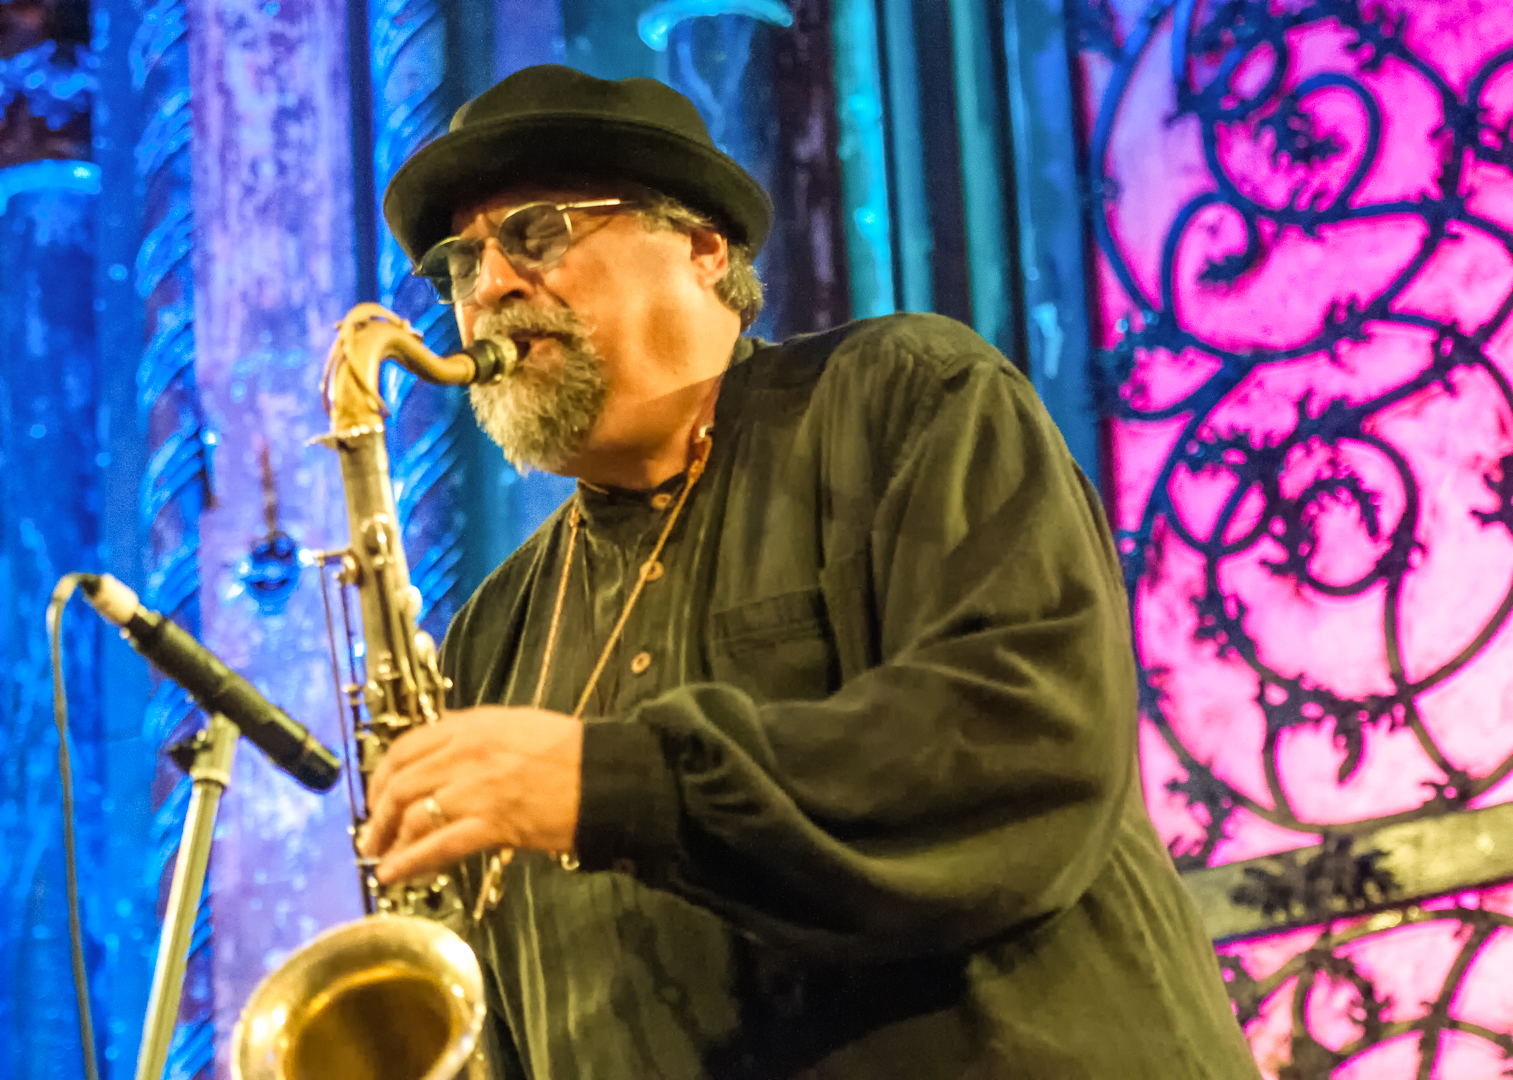 Joe Lovano at the Under_line Benefit at Angel Orensanz Foundation